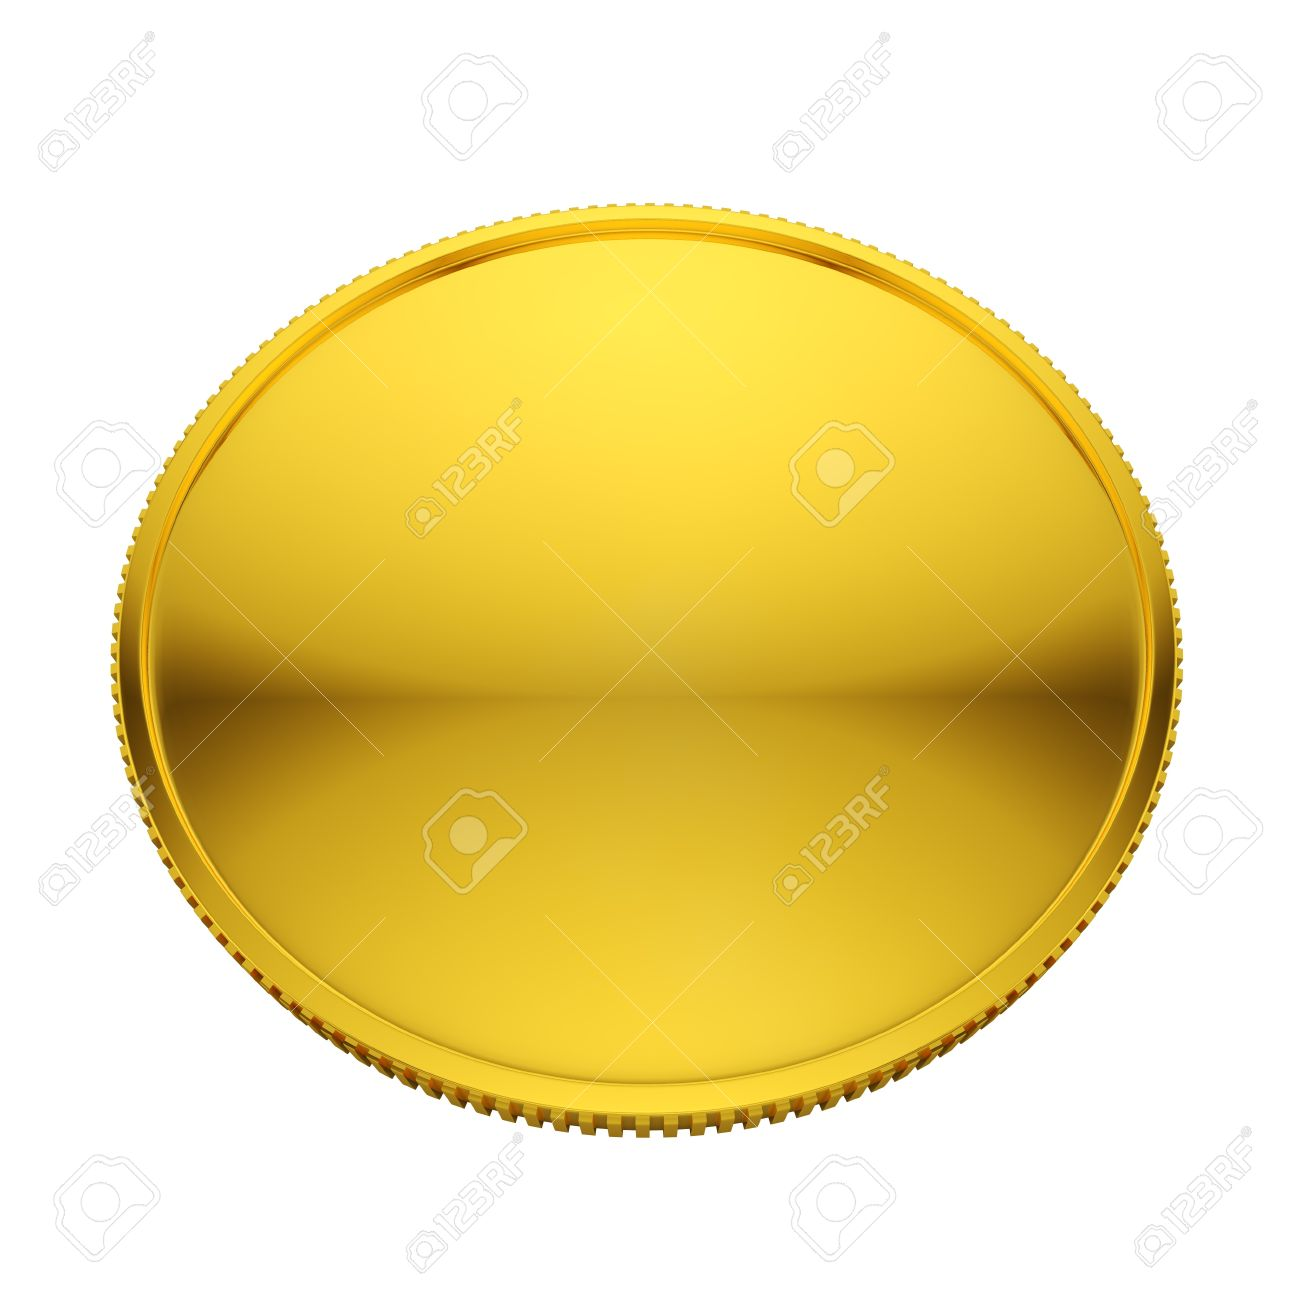 Blank golden coin isolated on white background Stock Photo - 17599685